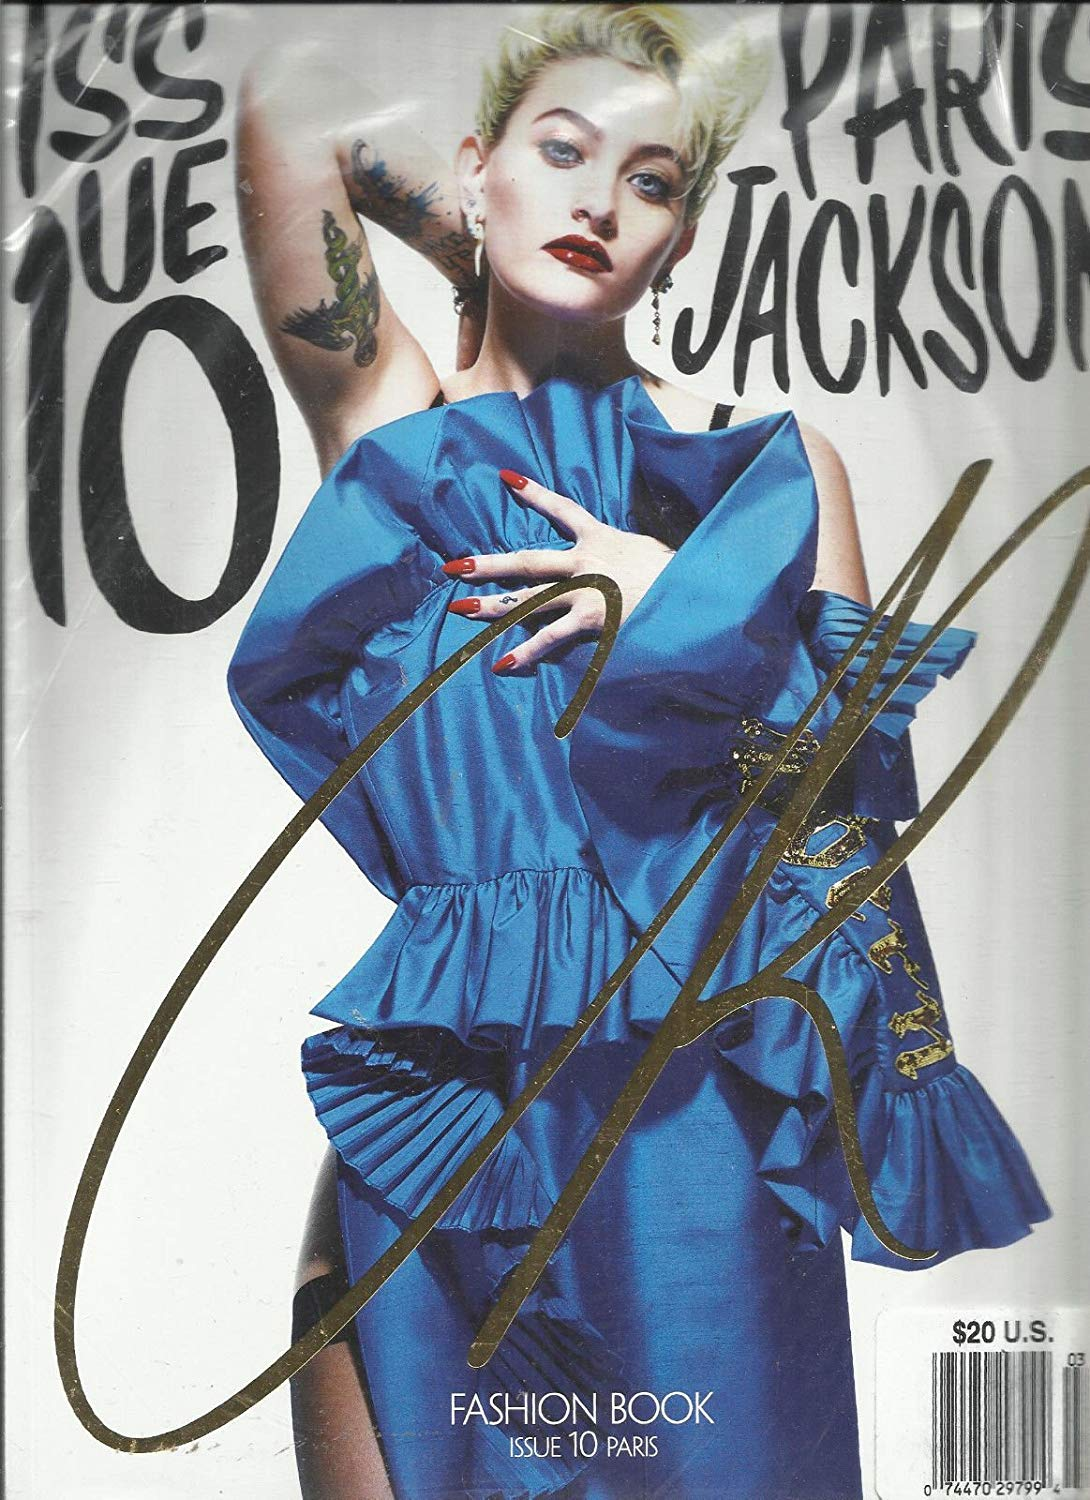 PARIS JACKSON - CR FASHION BOOK - SPRING/SUMMER, 2017 ISSUE, 10 PARIS